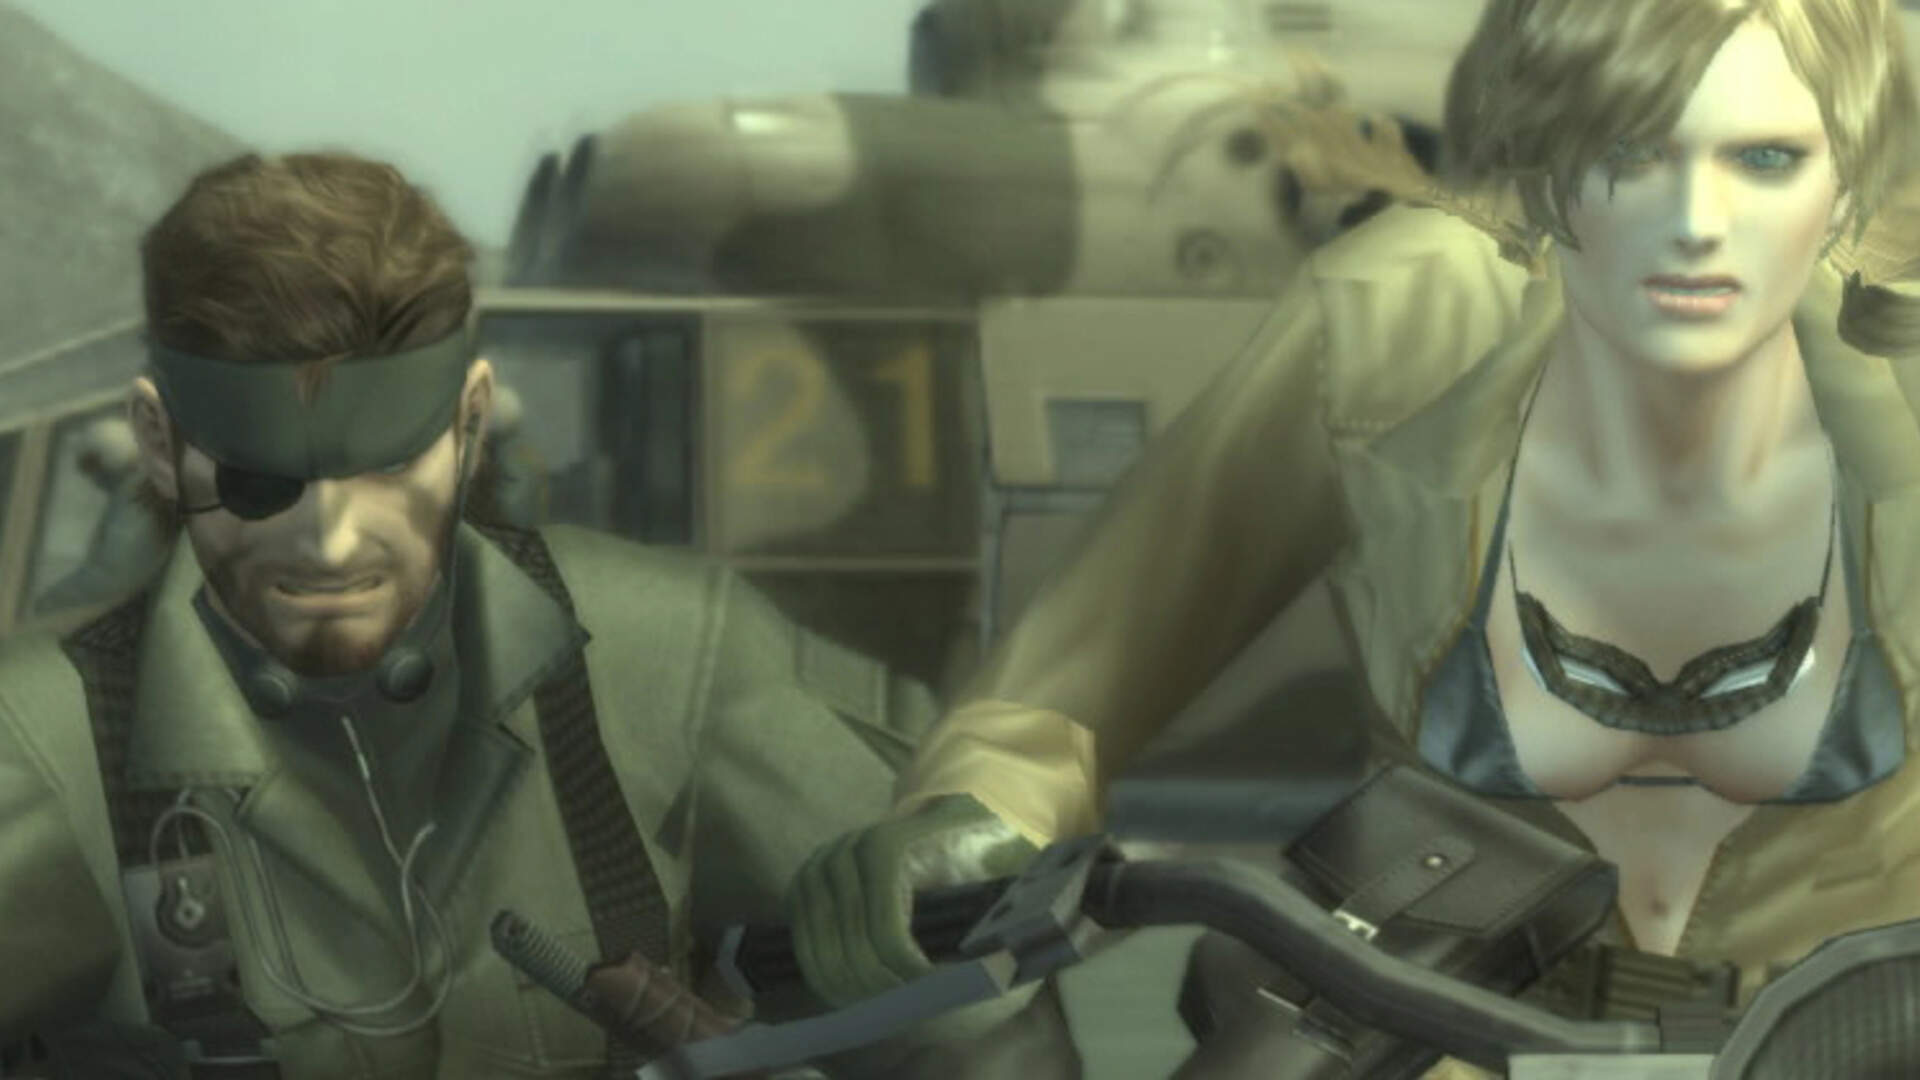 The 15 Best Games Since 2000, Number 2: Metal Gear Solid 3: Snake Eater